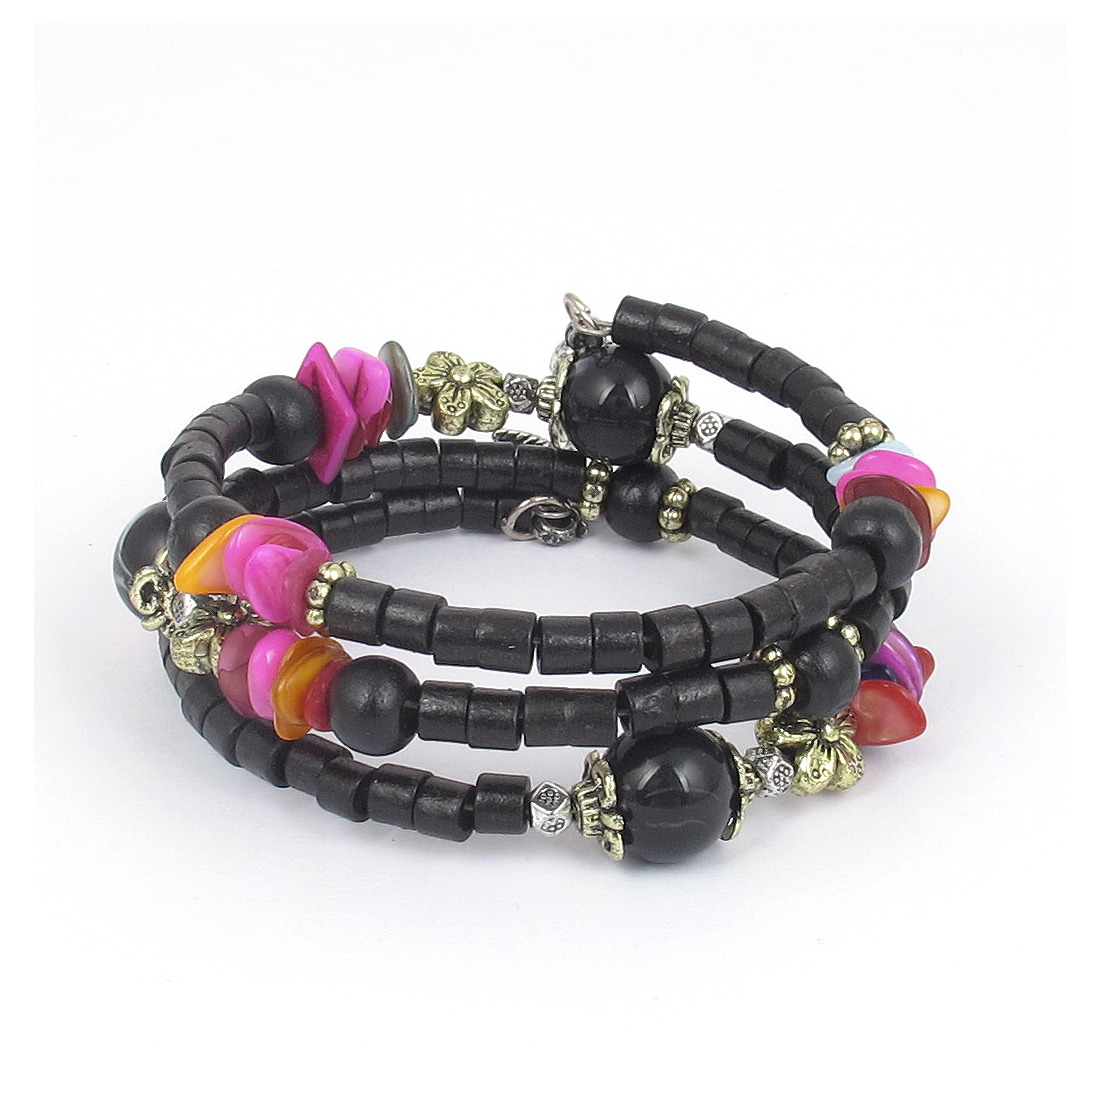 Women Handmade National Style Wooden Cylinder Beads Flower Decor 3-layer Bangle Bracelet Black